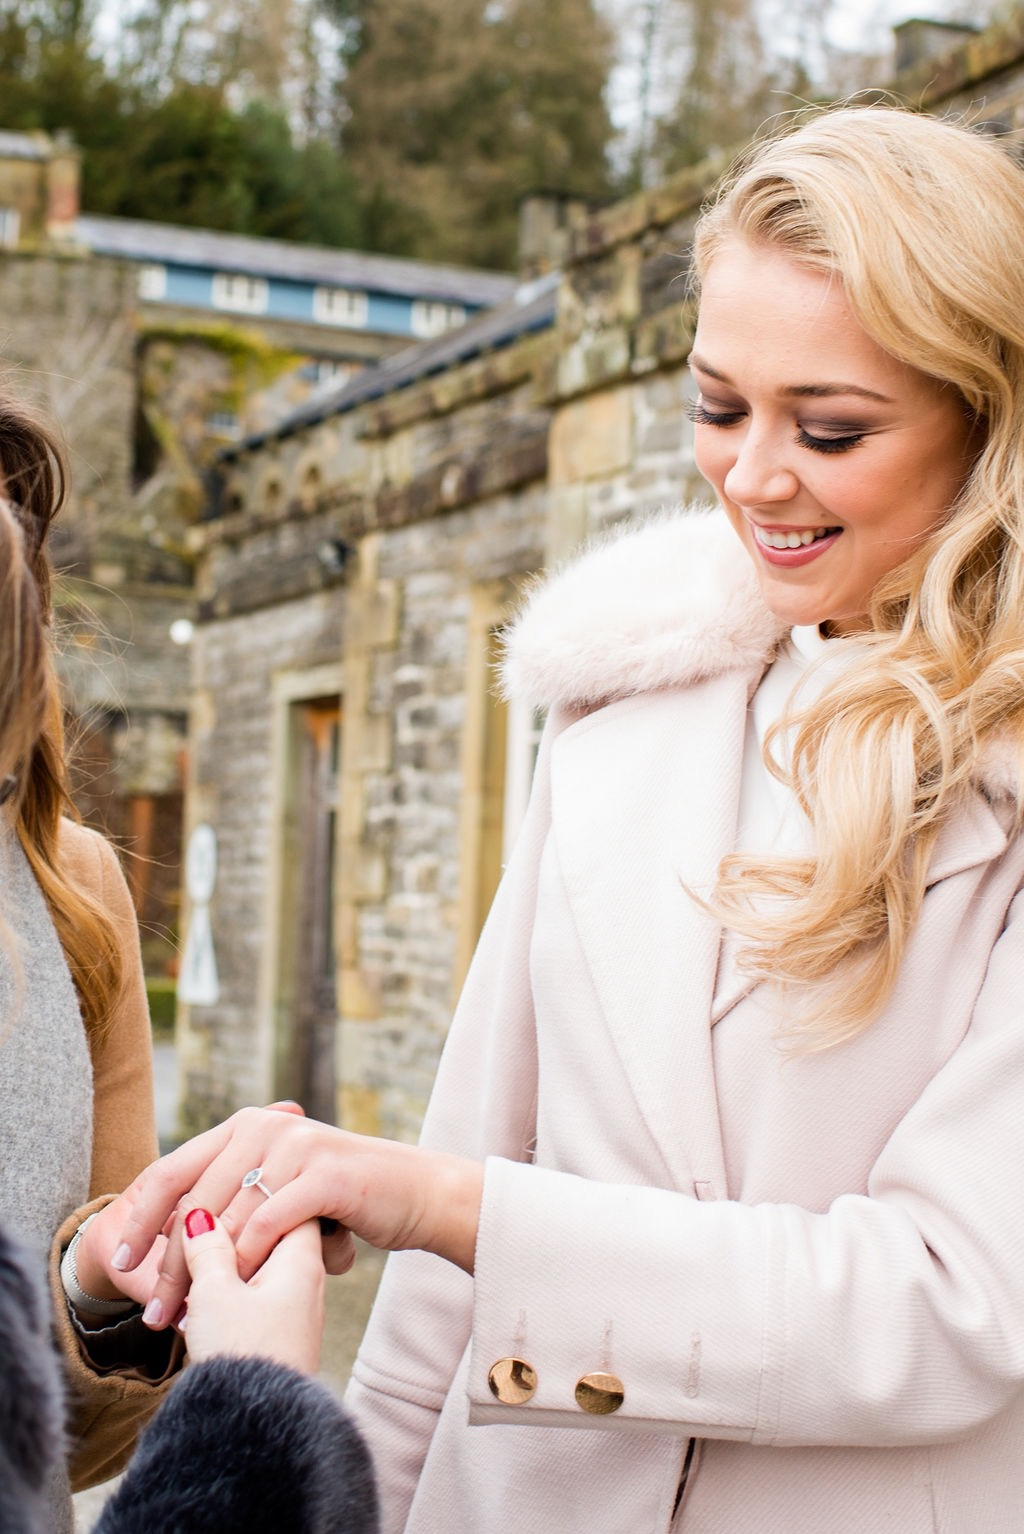 Five Ways To Make Her Perfect Proposal a Reality